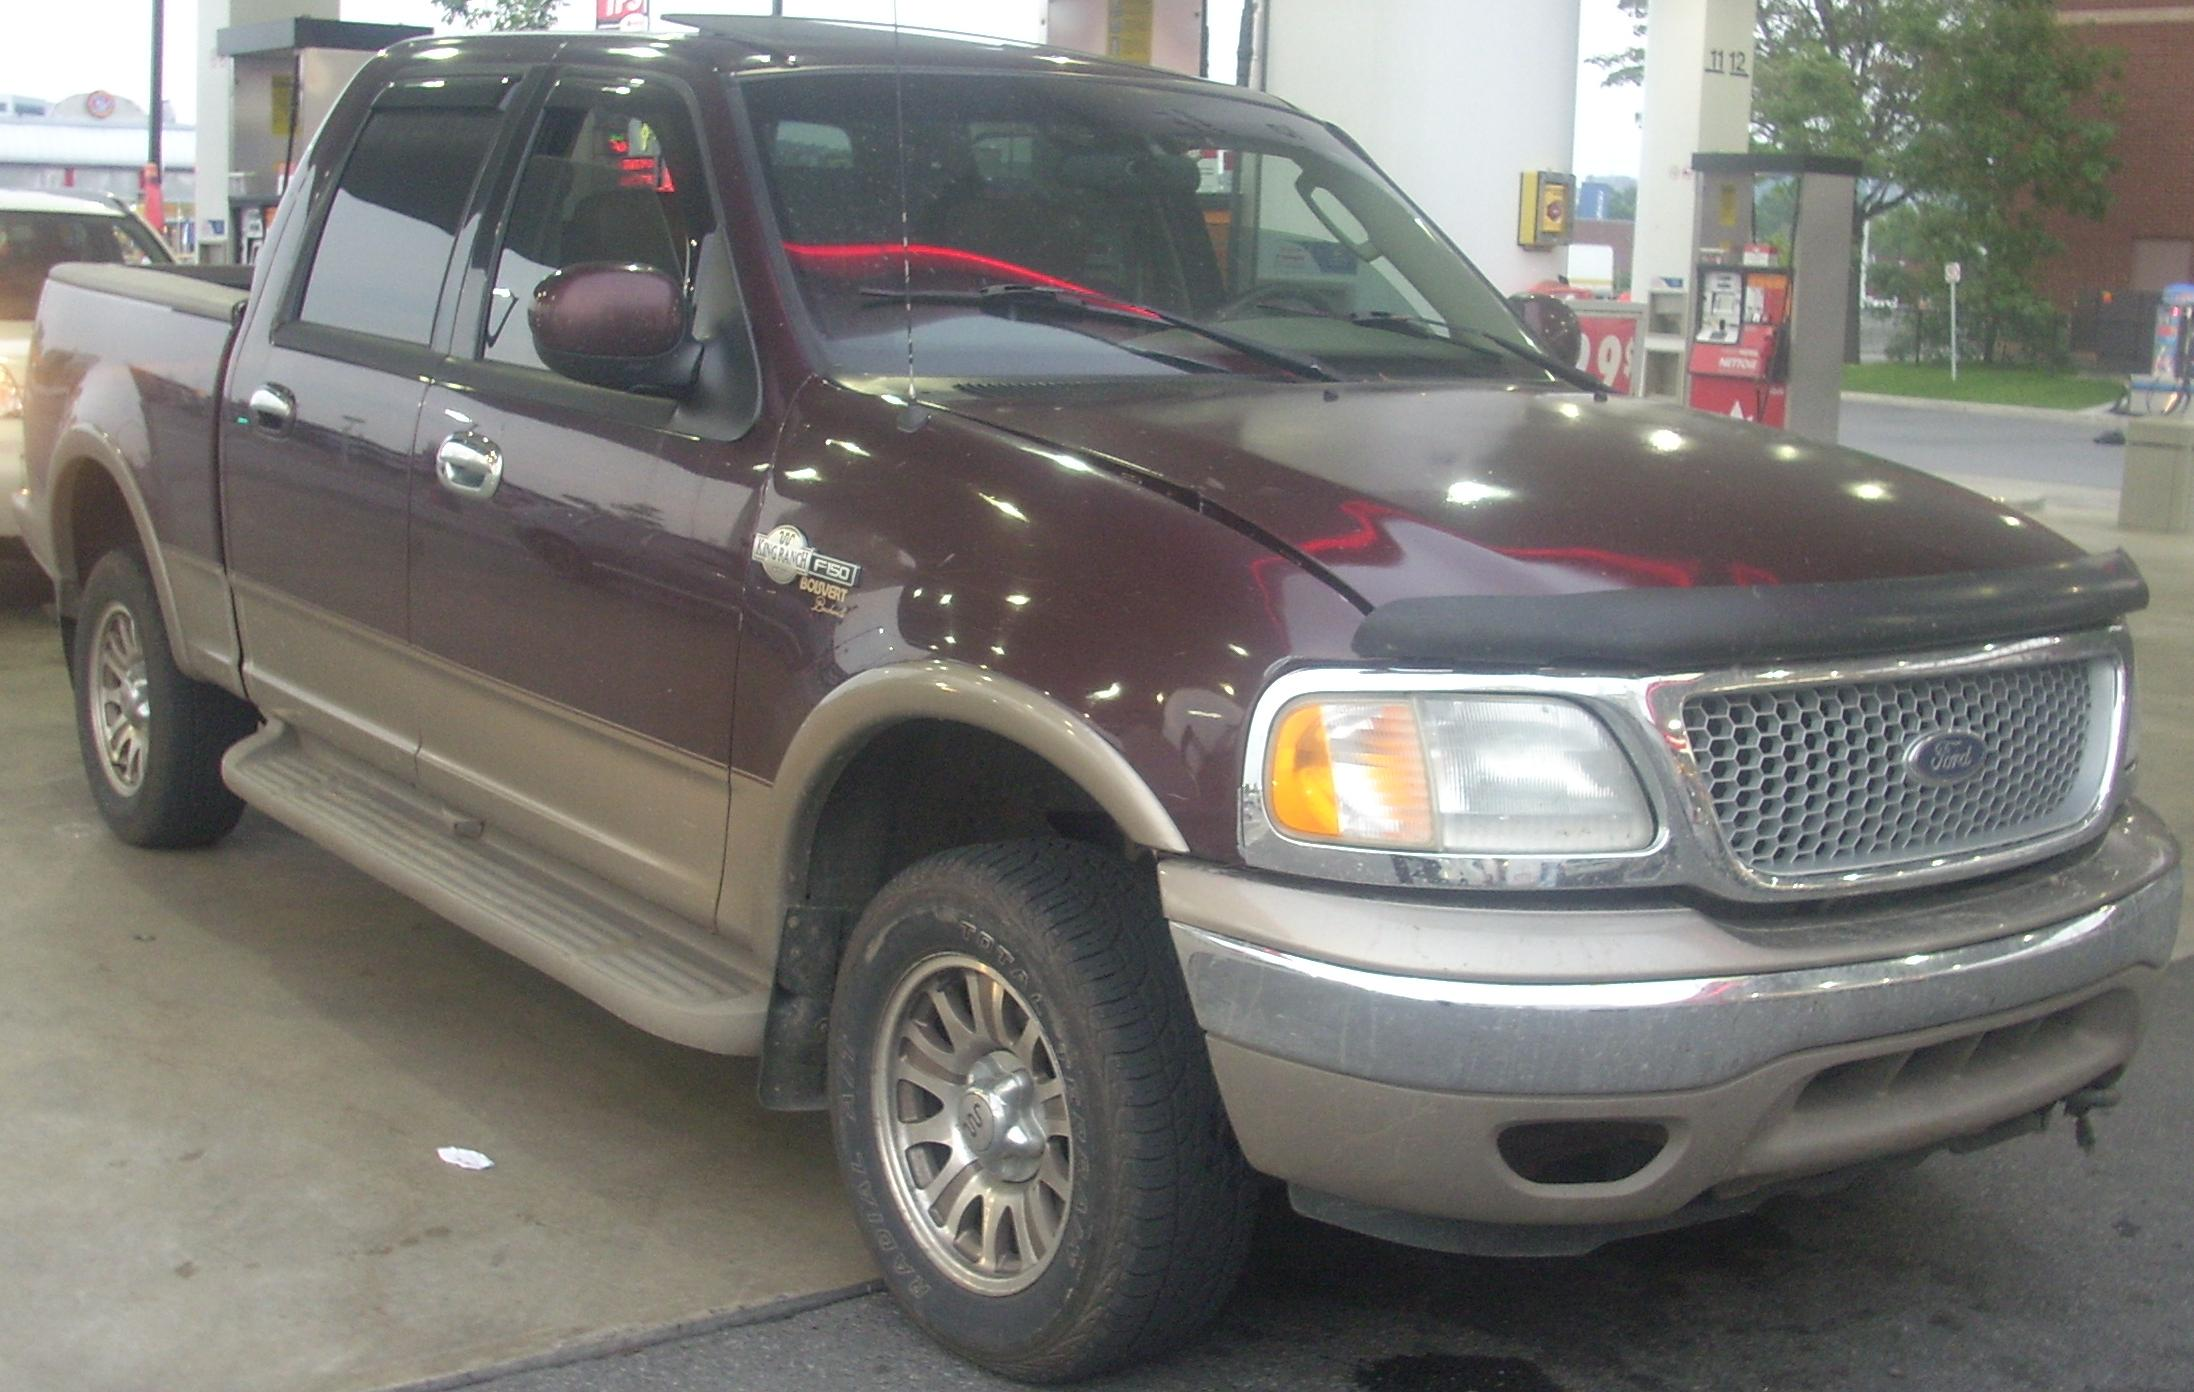 Ford F150 King Ranch >> File:'01-'03 Ford F-150 King Ranch.jpg - Wikimedia Commons